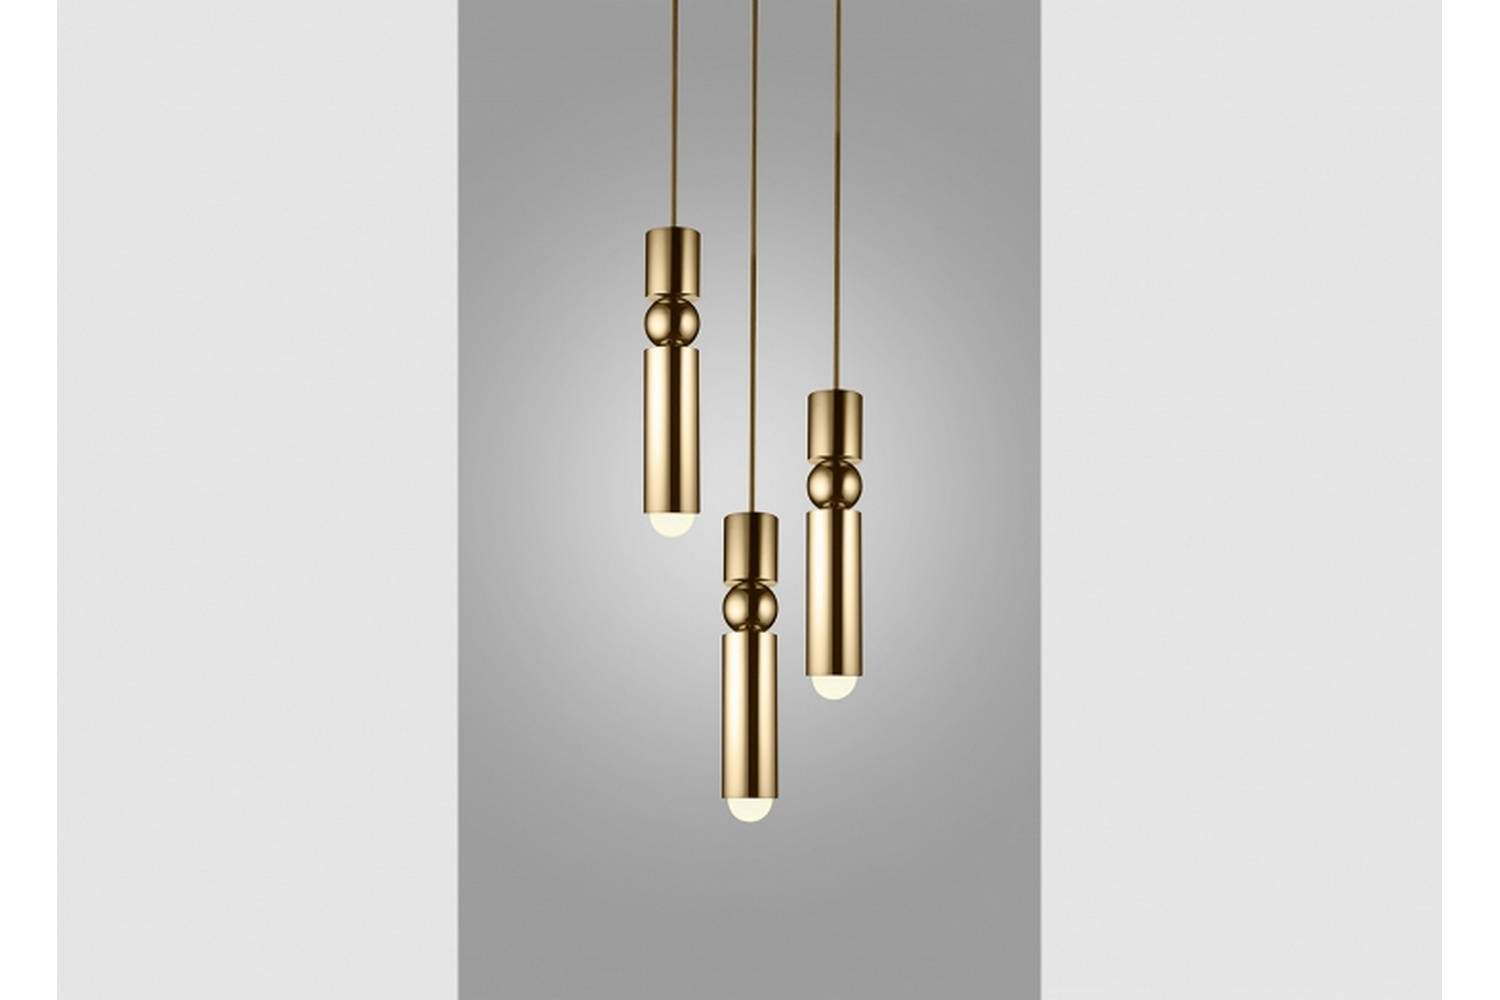 Fulcrum Chandelier 3 Piece - Polished Gold by Lee Broom